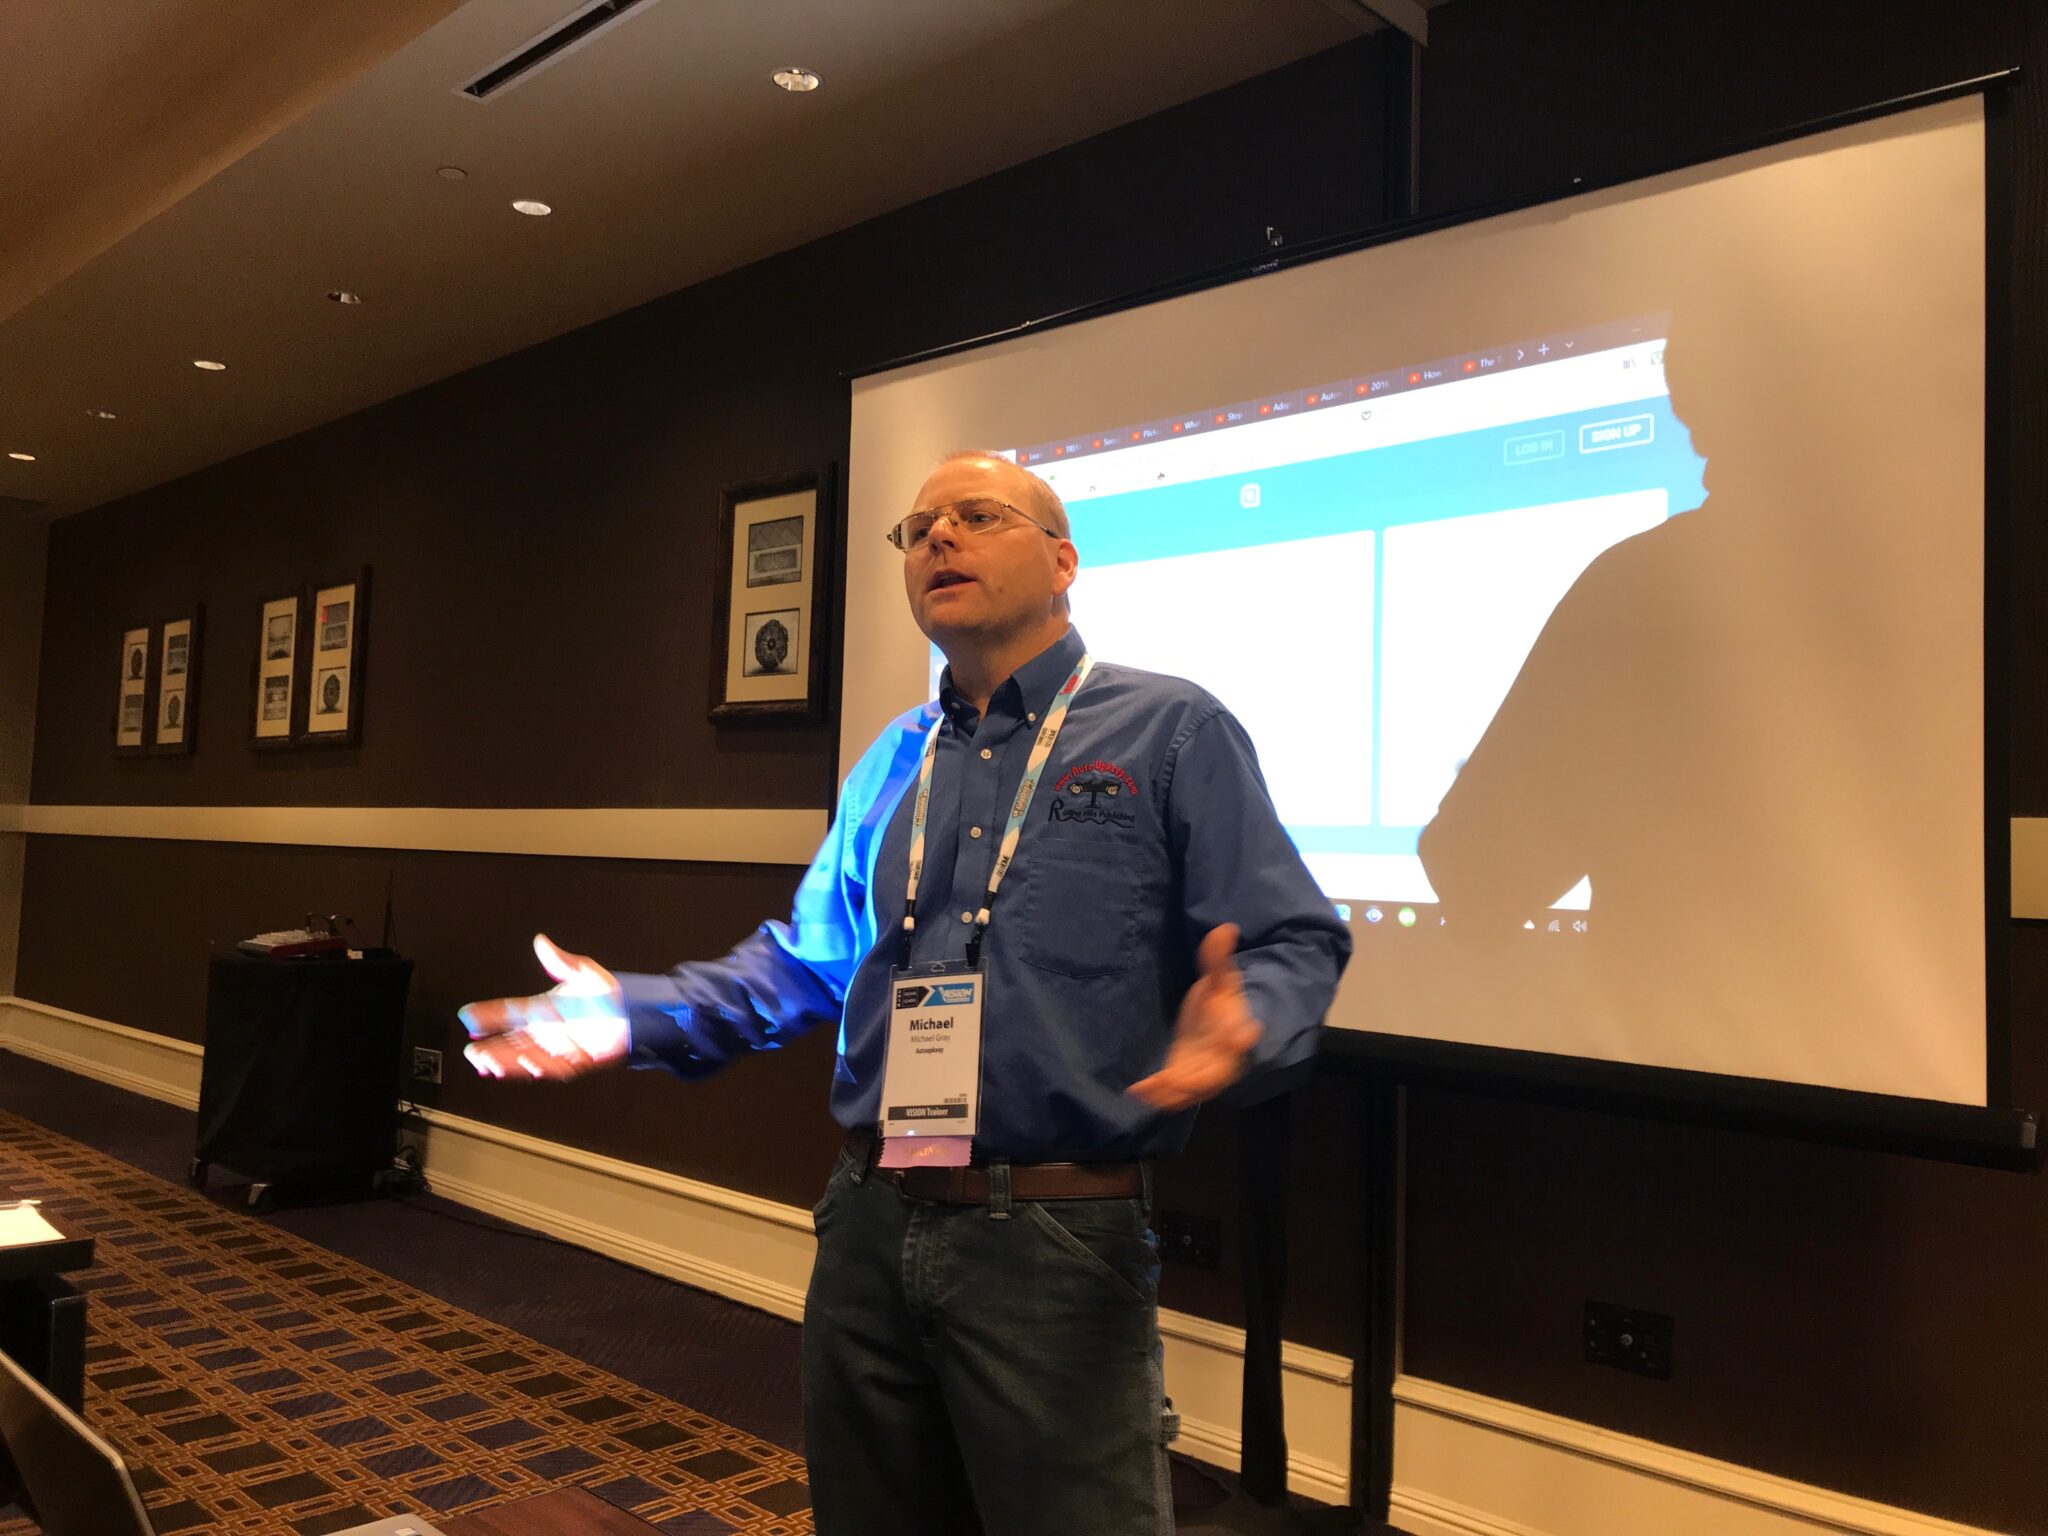 Michael Gary teaches class at Vision Hi-Tech Training and Expo